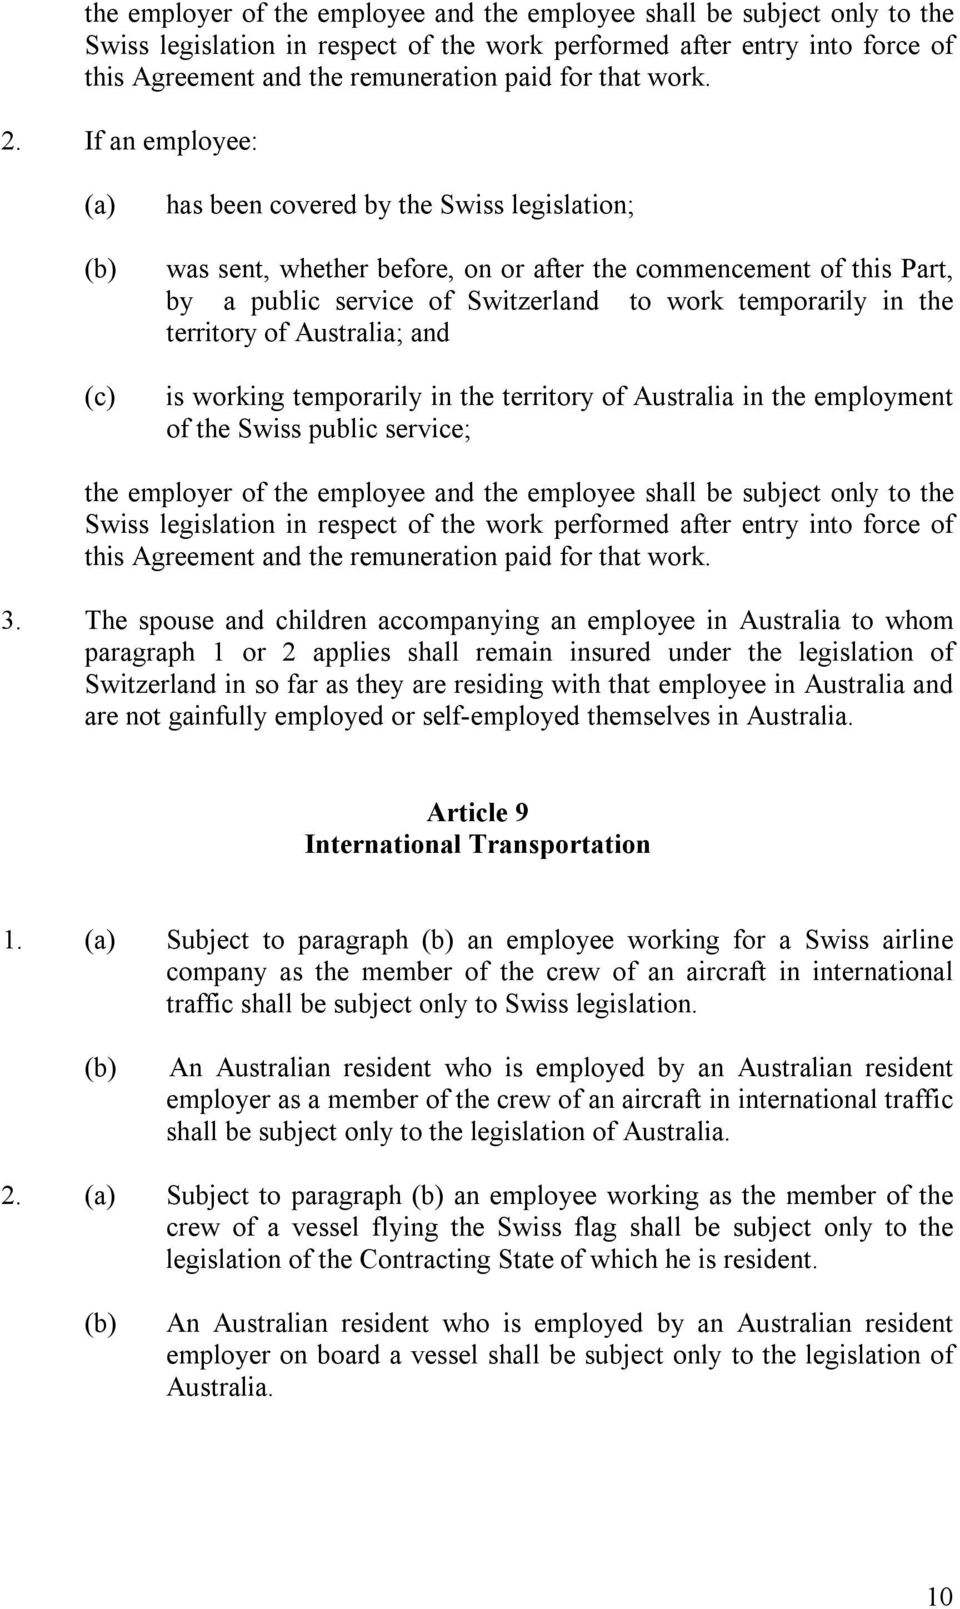 If an employee: (c) has been covered by the Swiss legislation; was sent, whether before, on or after the commencement of this Part, by a public service of Switzerland to work temporarily in the